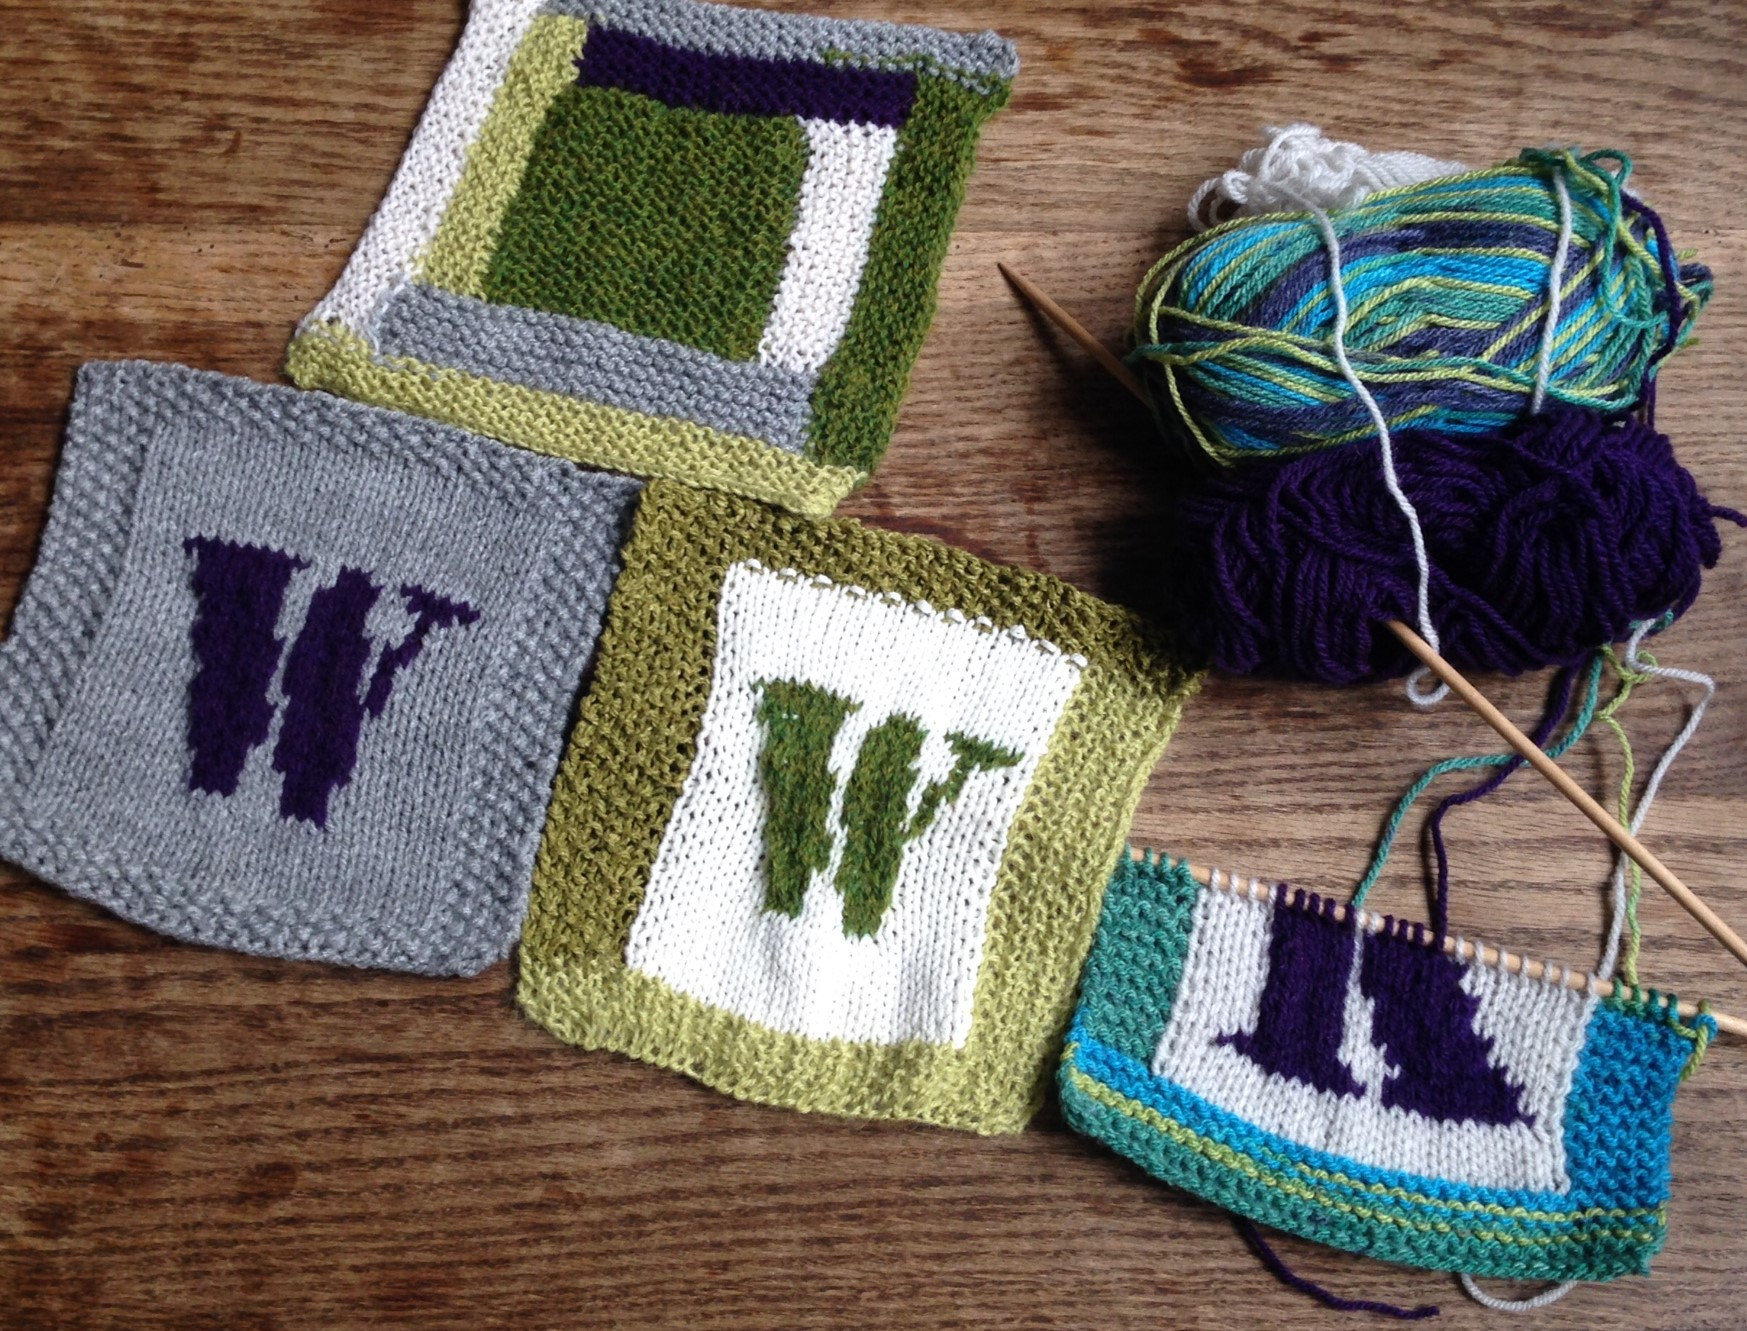 First squares being prepared for the blanket that we all will knit on 13 June in Brussels!